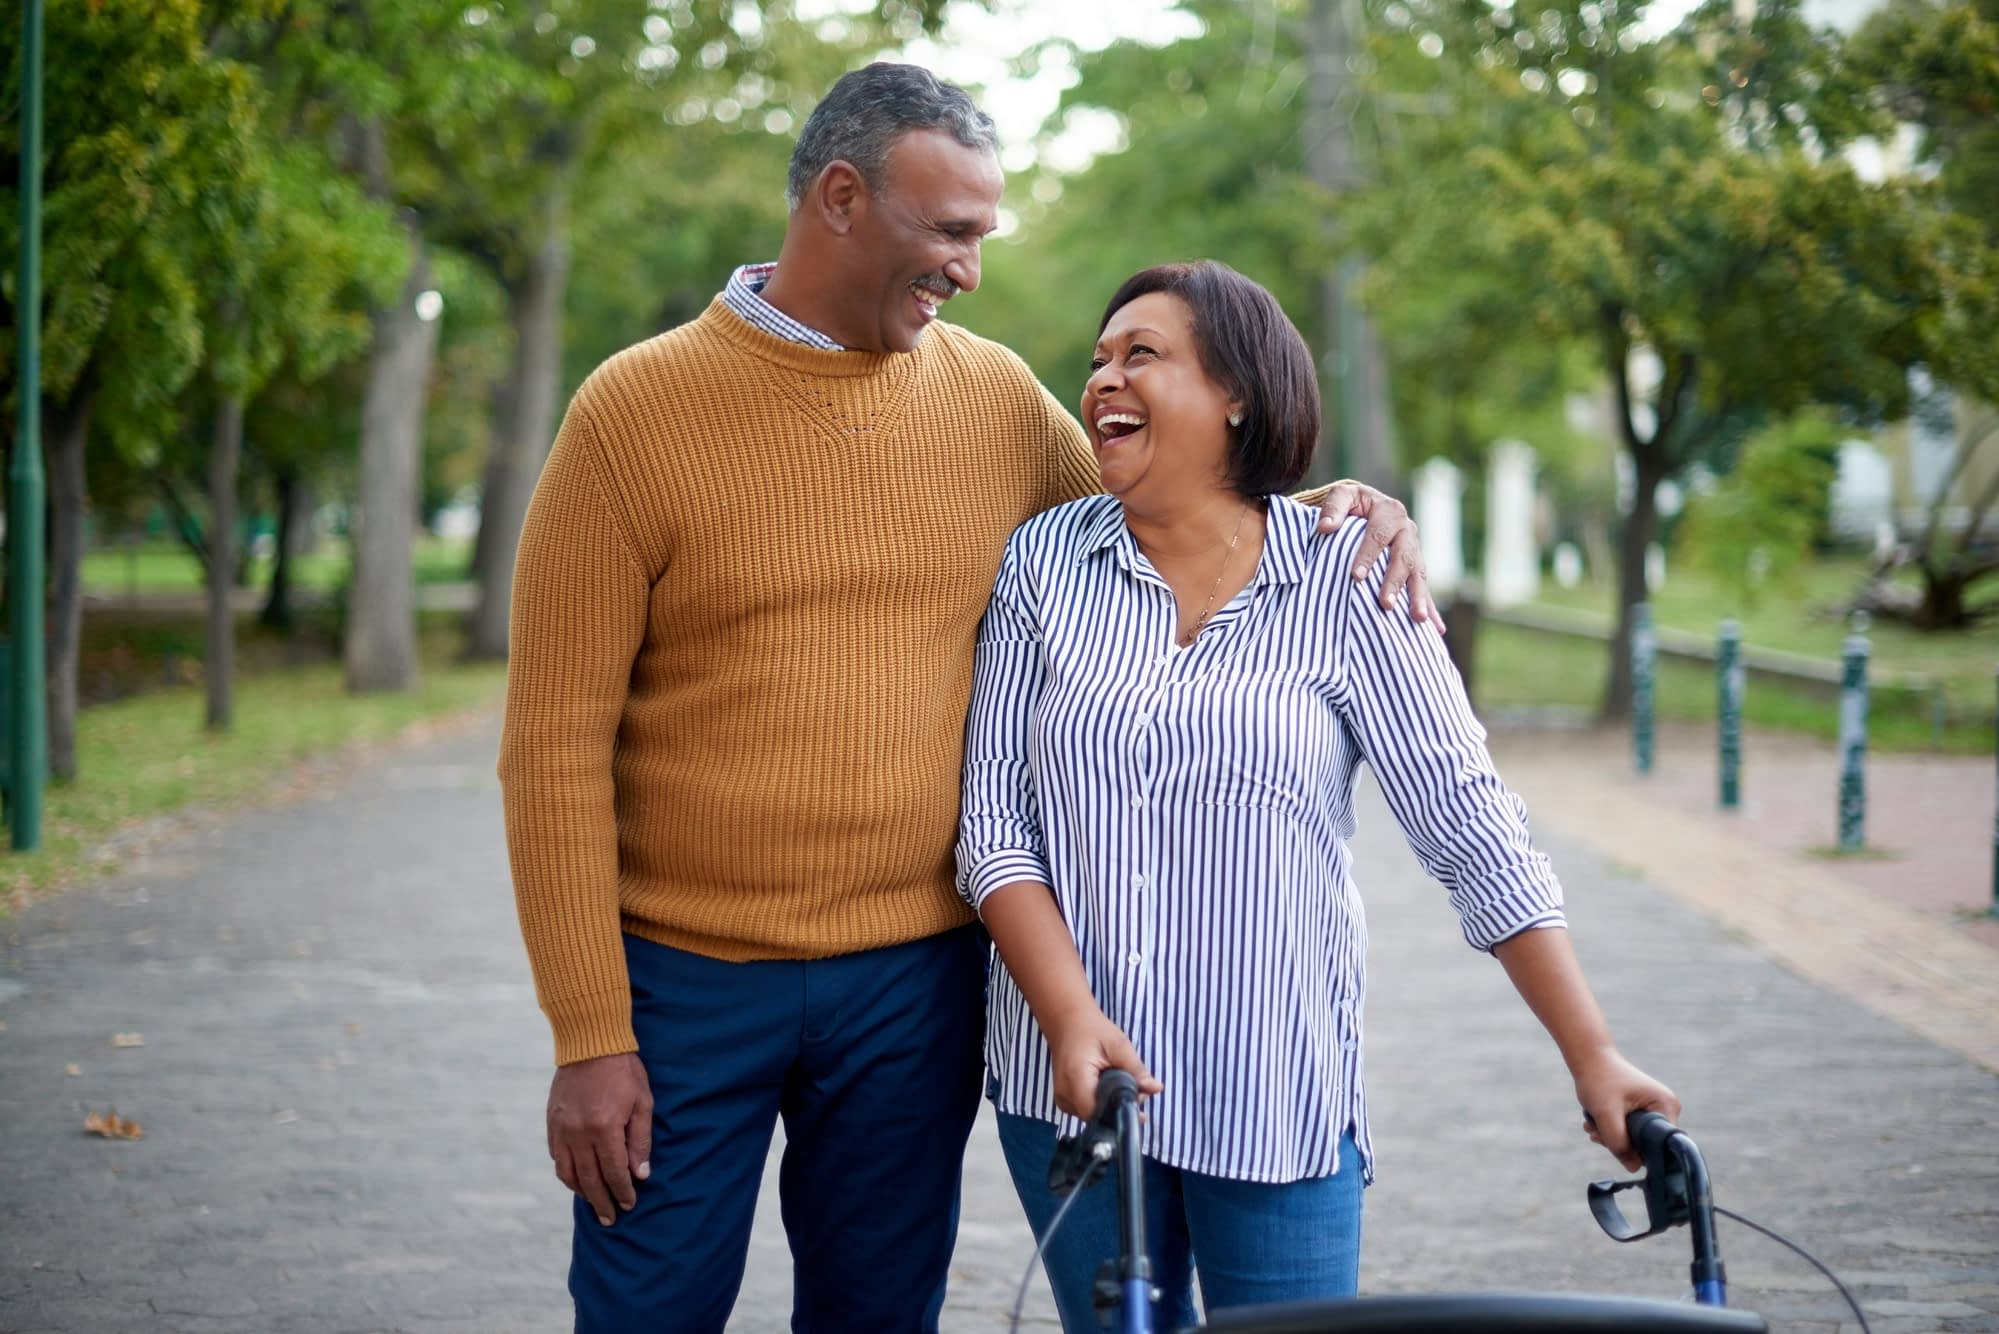 Happy middle-aged couple walking along path.